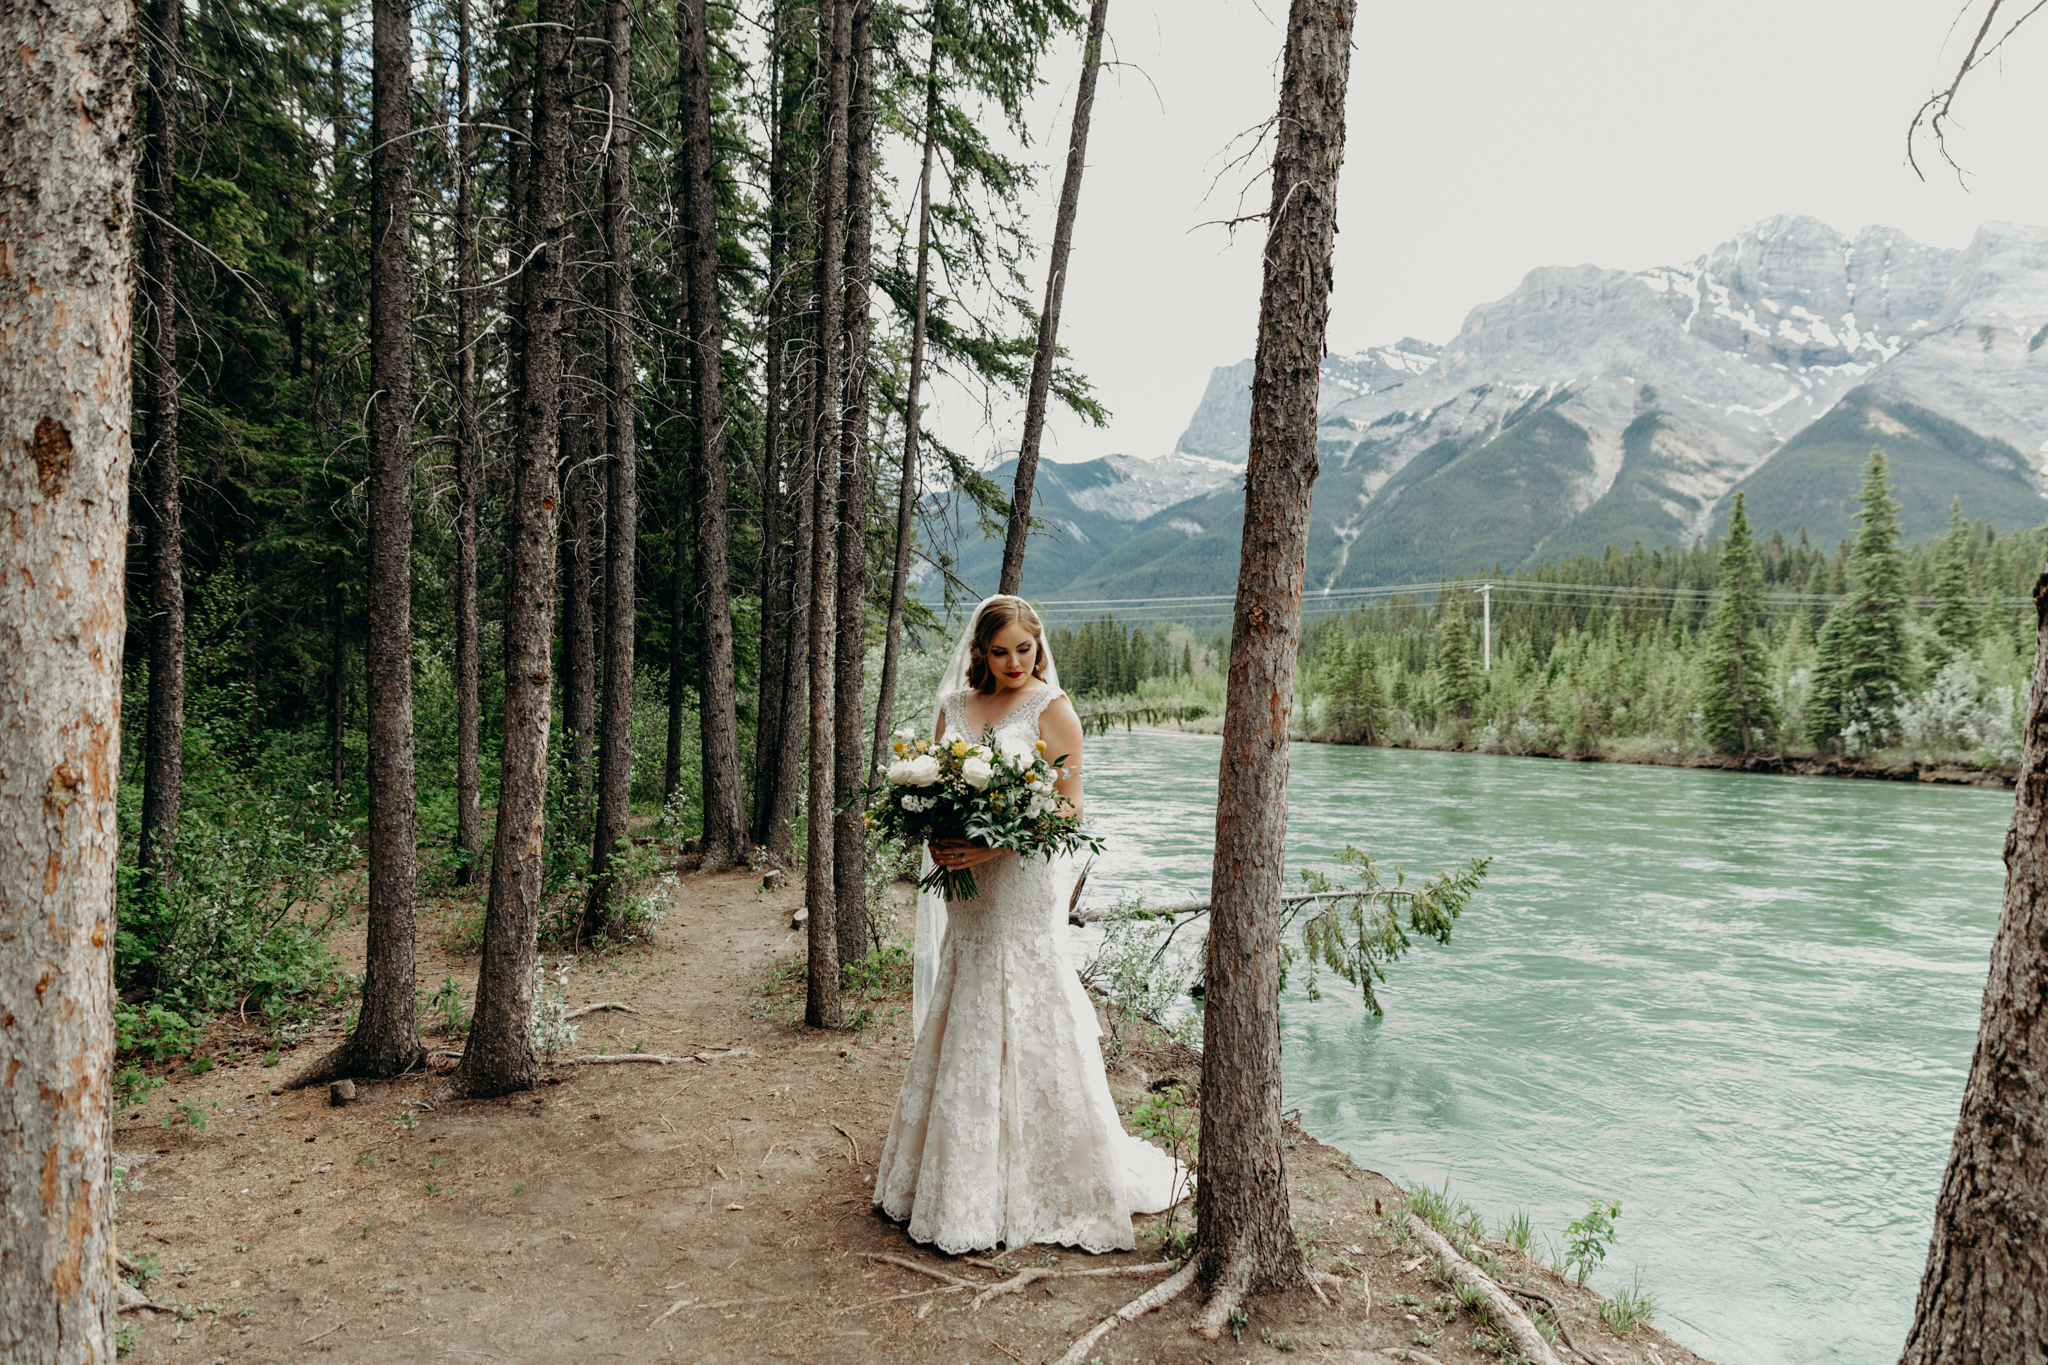 Bride stands by the Bow River holding larger flower bouquet with mountains in background